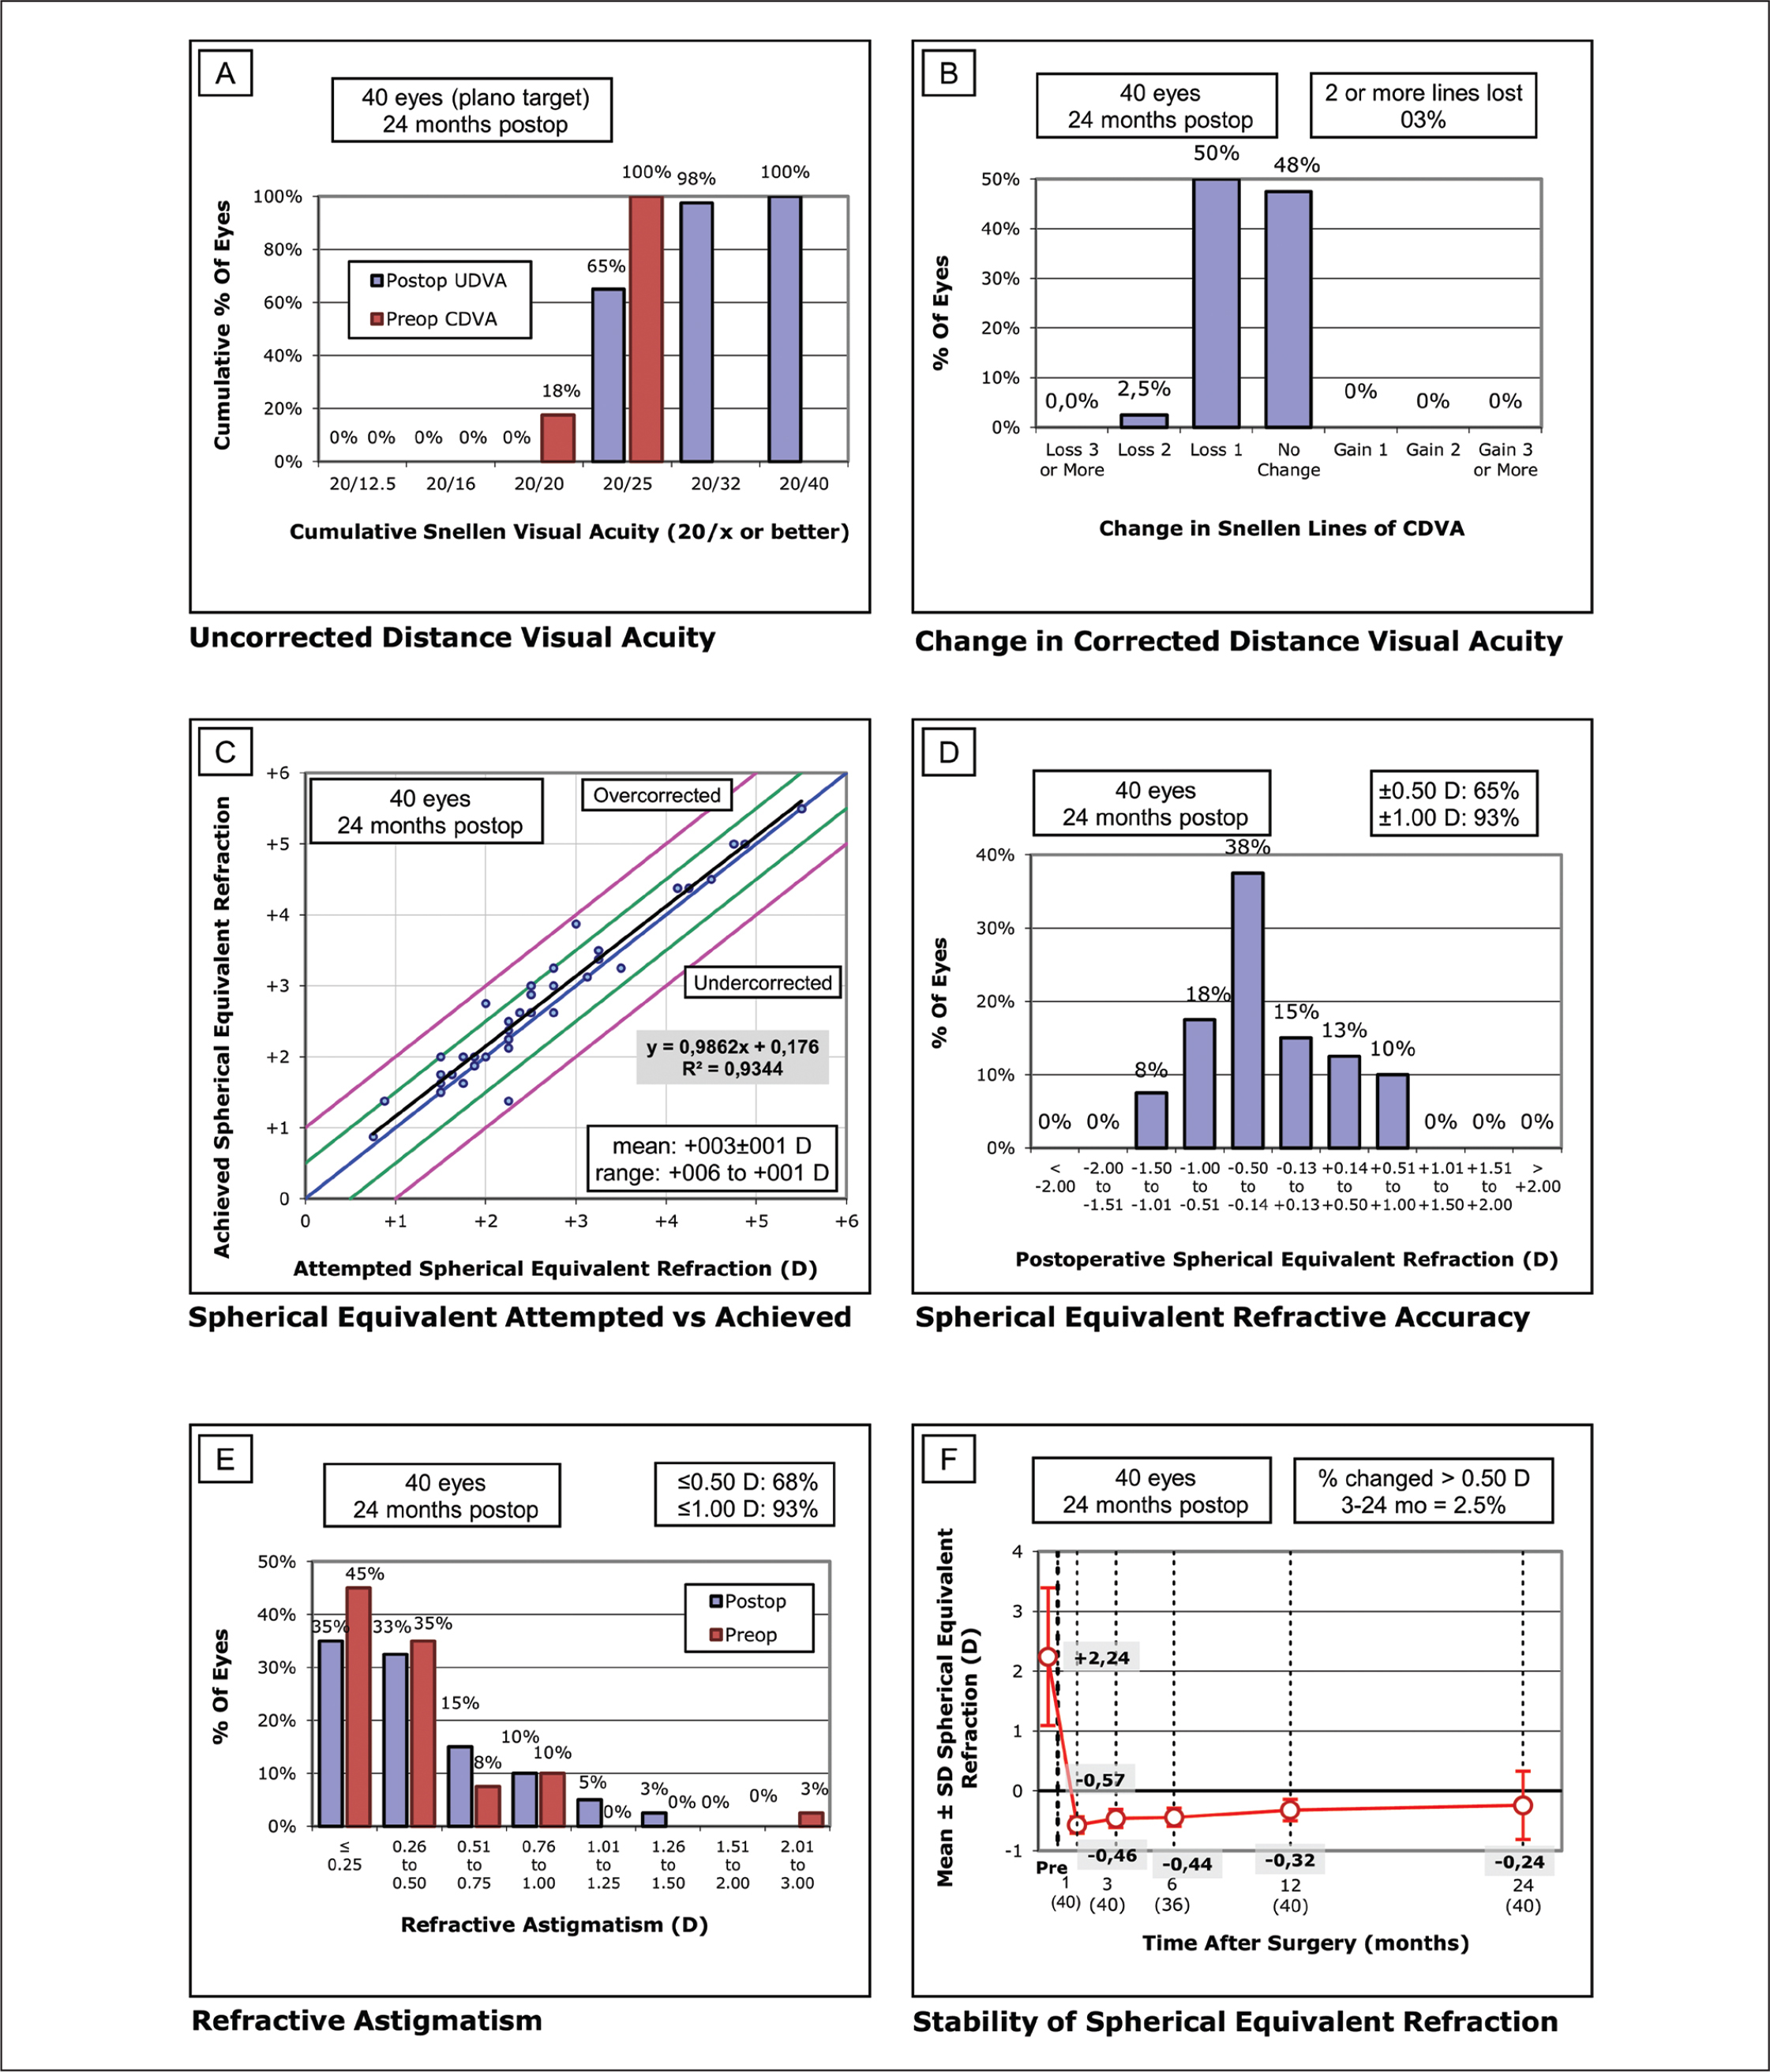 SUPRACOR (Bausch & Lomb Technolas, Munich, Germany) (non-dominant eye) standard graphs for reporting refractive surgery. (A) Uncorrected distance visual acuity (UDVA): efficacy histogram. (B) Change in corrected distance visual acuity (CDVA): safety histogram. (C) Spherical equivalent attempted versus achieved. (D) Spherical equivalent refractive accuracy. (E) Refractive astigmatism. C, D, and E graphs represent predictability. (F) Stability of spherical equivalent refraction. D = diopters